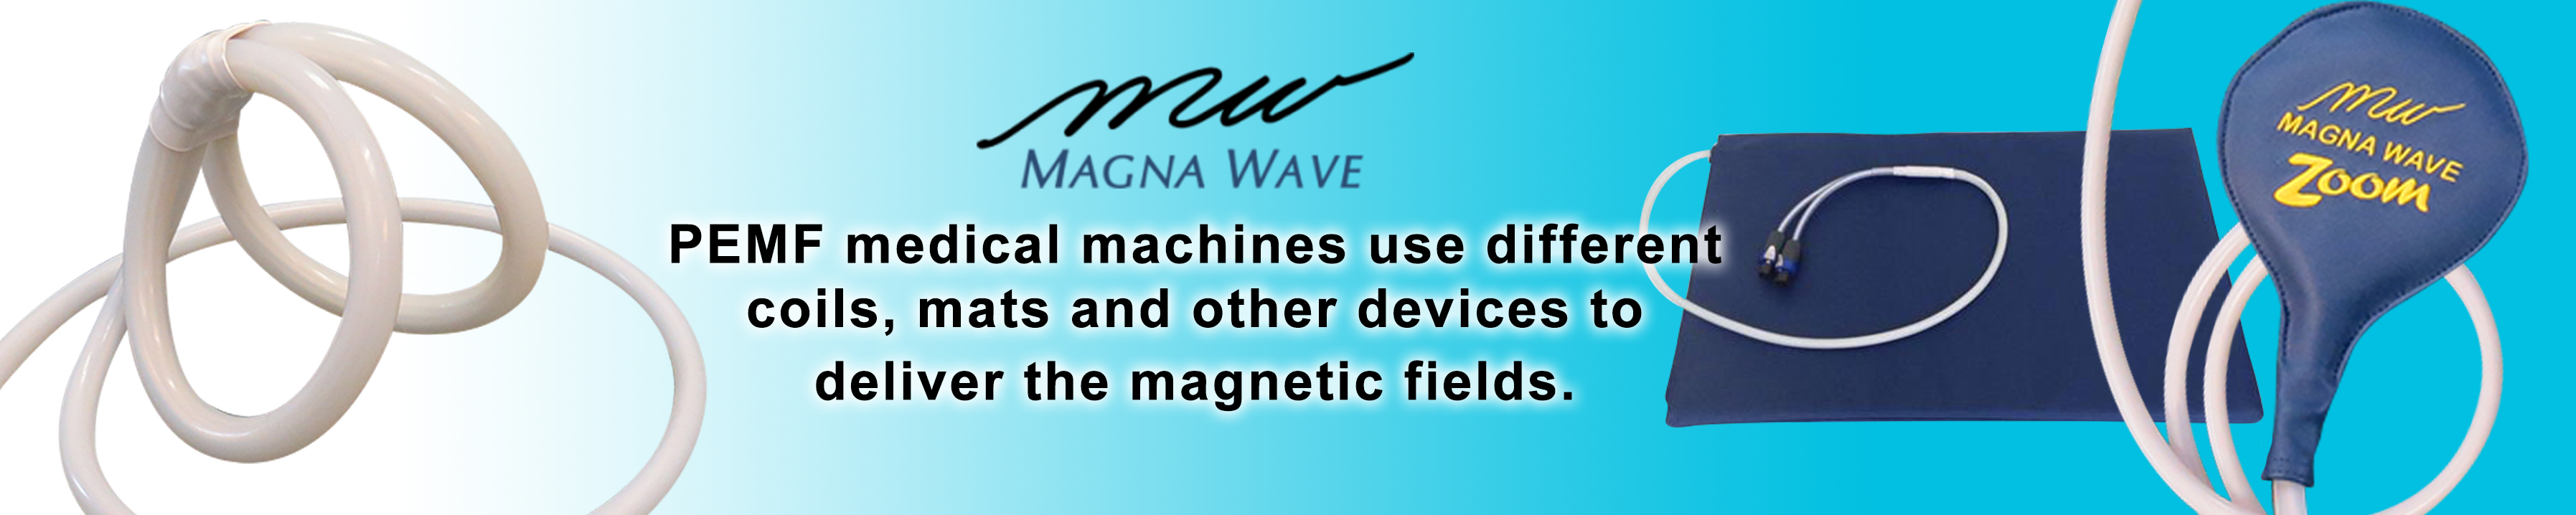 Magna Wave PEMF Medical Machines use different coils, mats and other devices to deliver the magnetic fields.